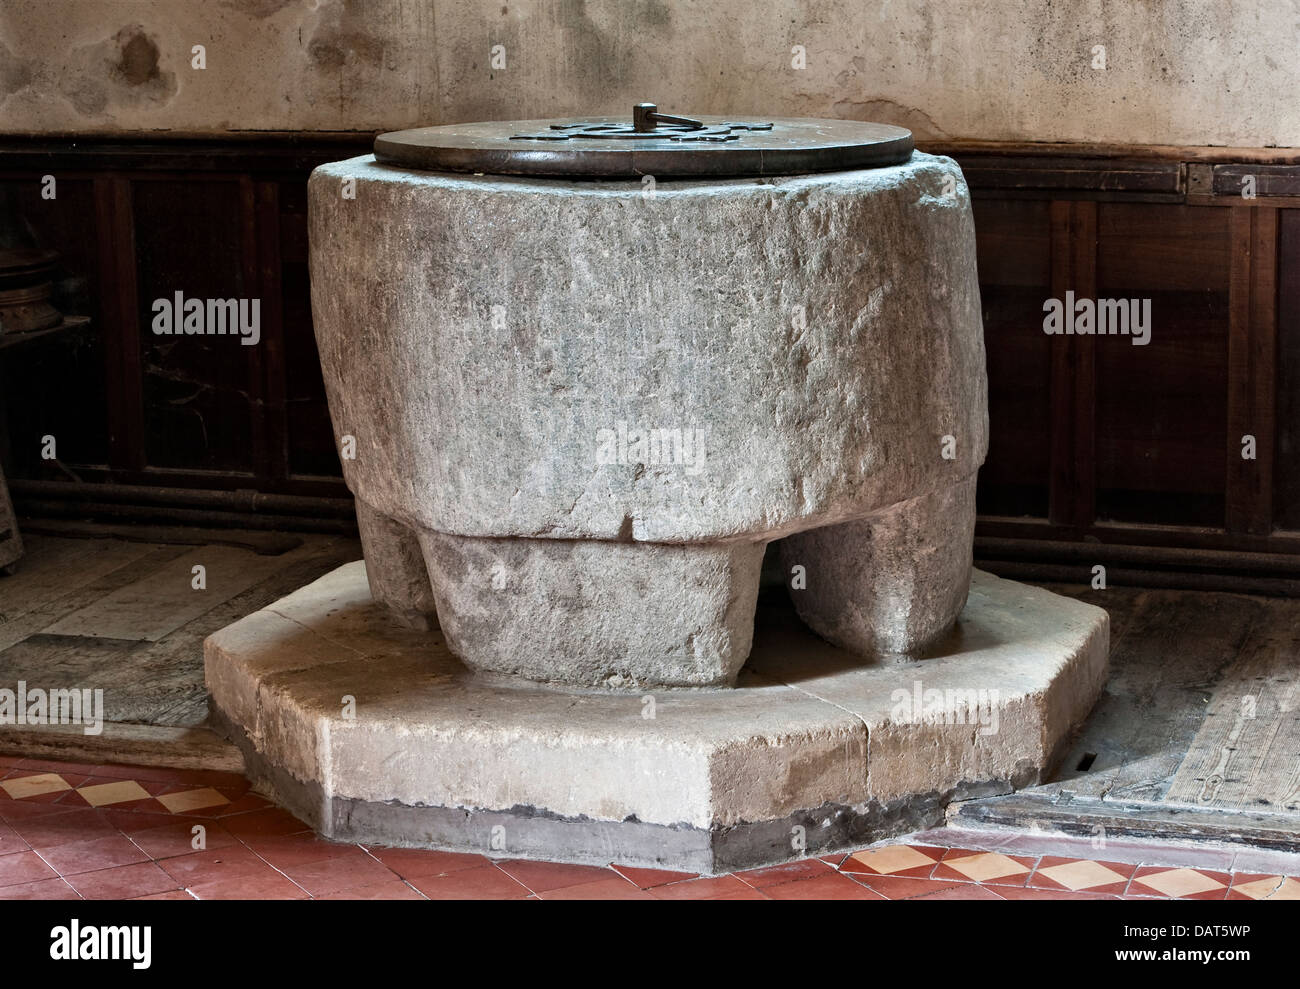 An old pre-Norman stone font dating from the 8th century (possibly an old standing stone) in the 15c St Stephen's Church, Old Radnor, Powys, Wales, UK Stock Photo